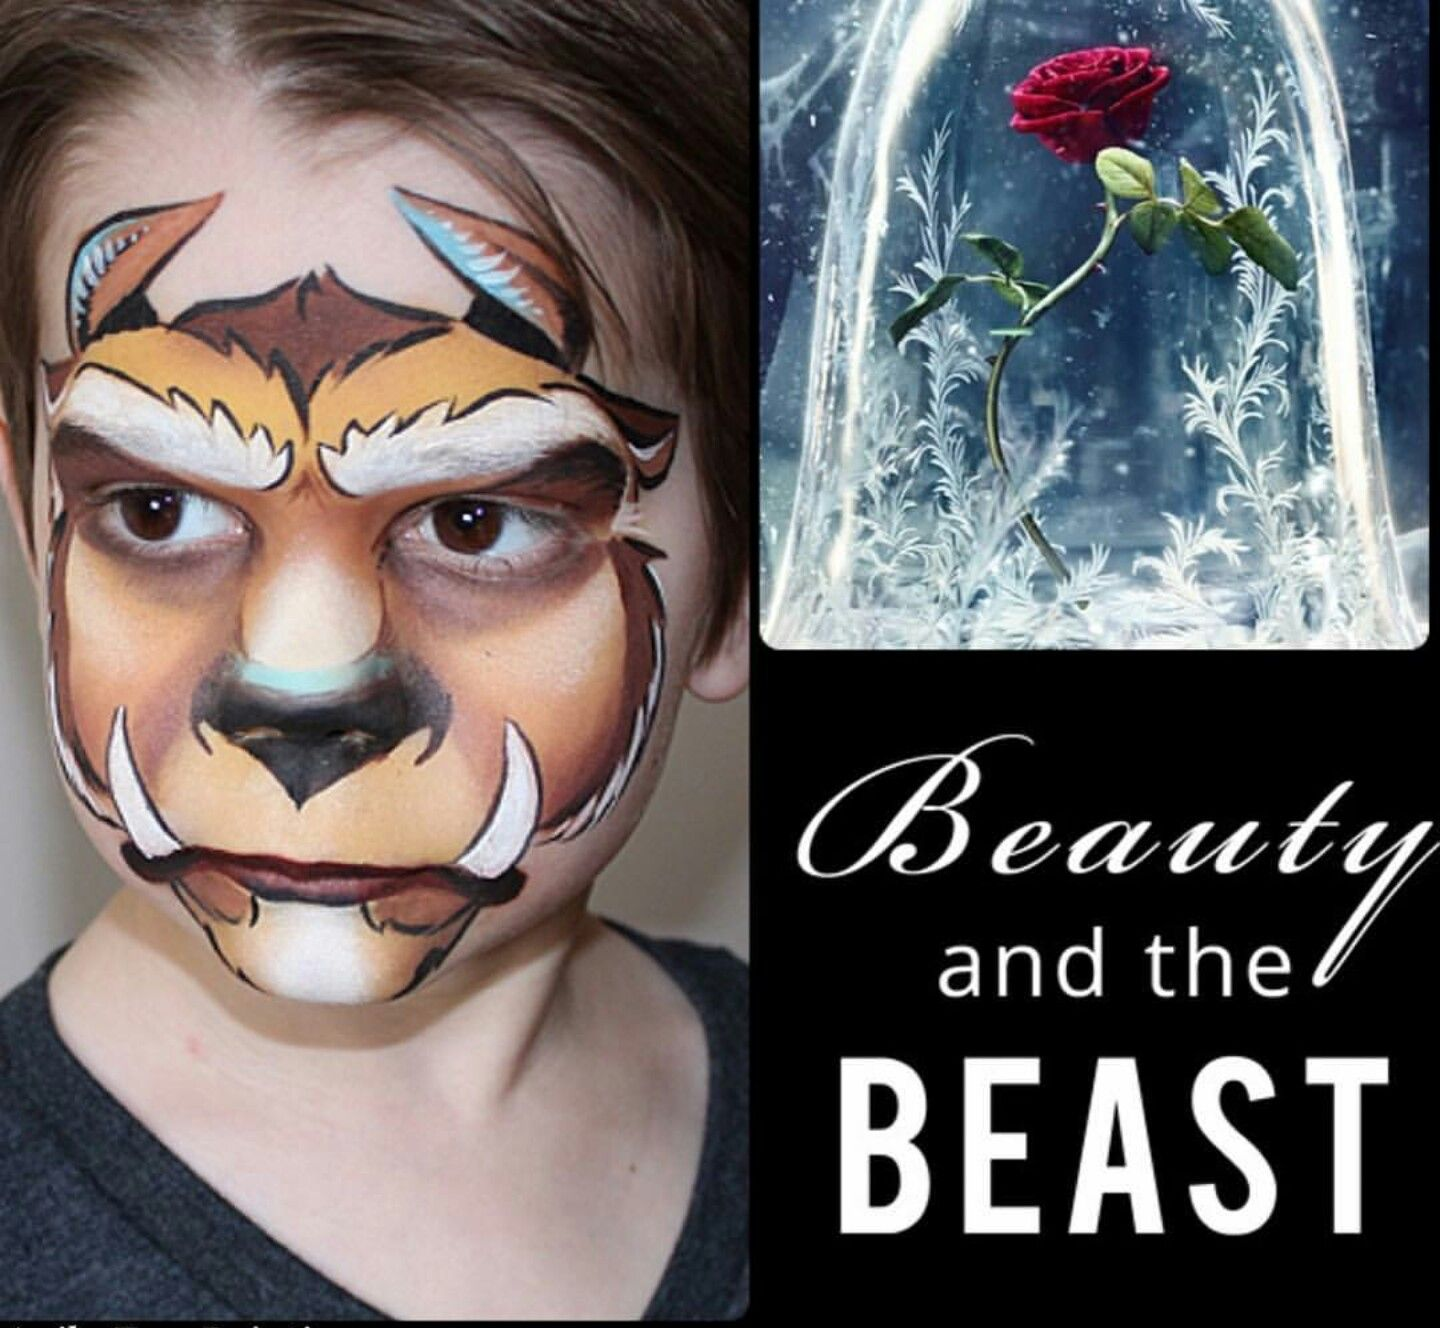 beast from beauty and